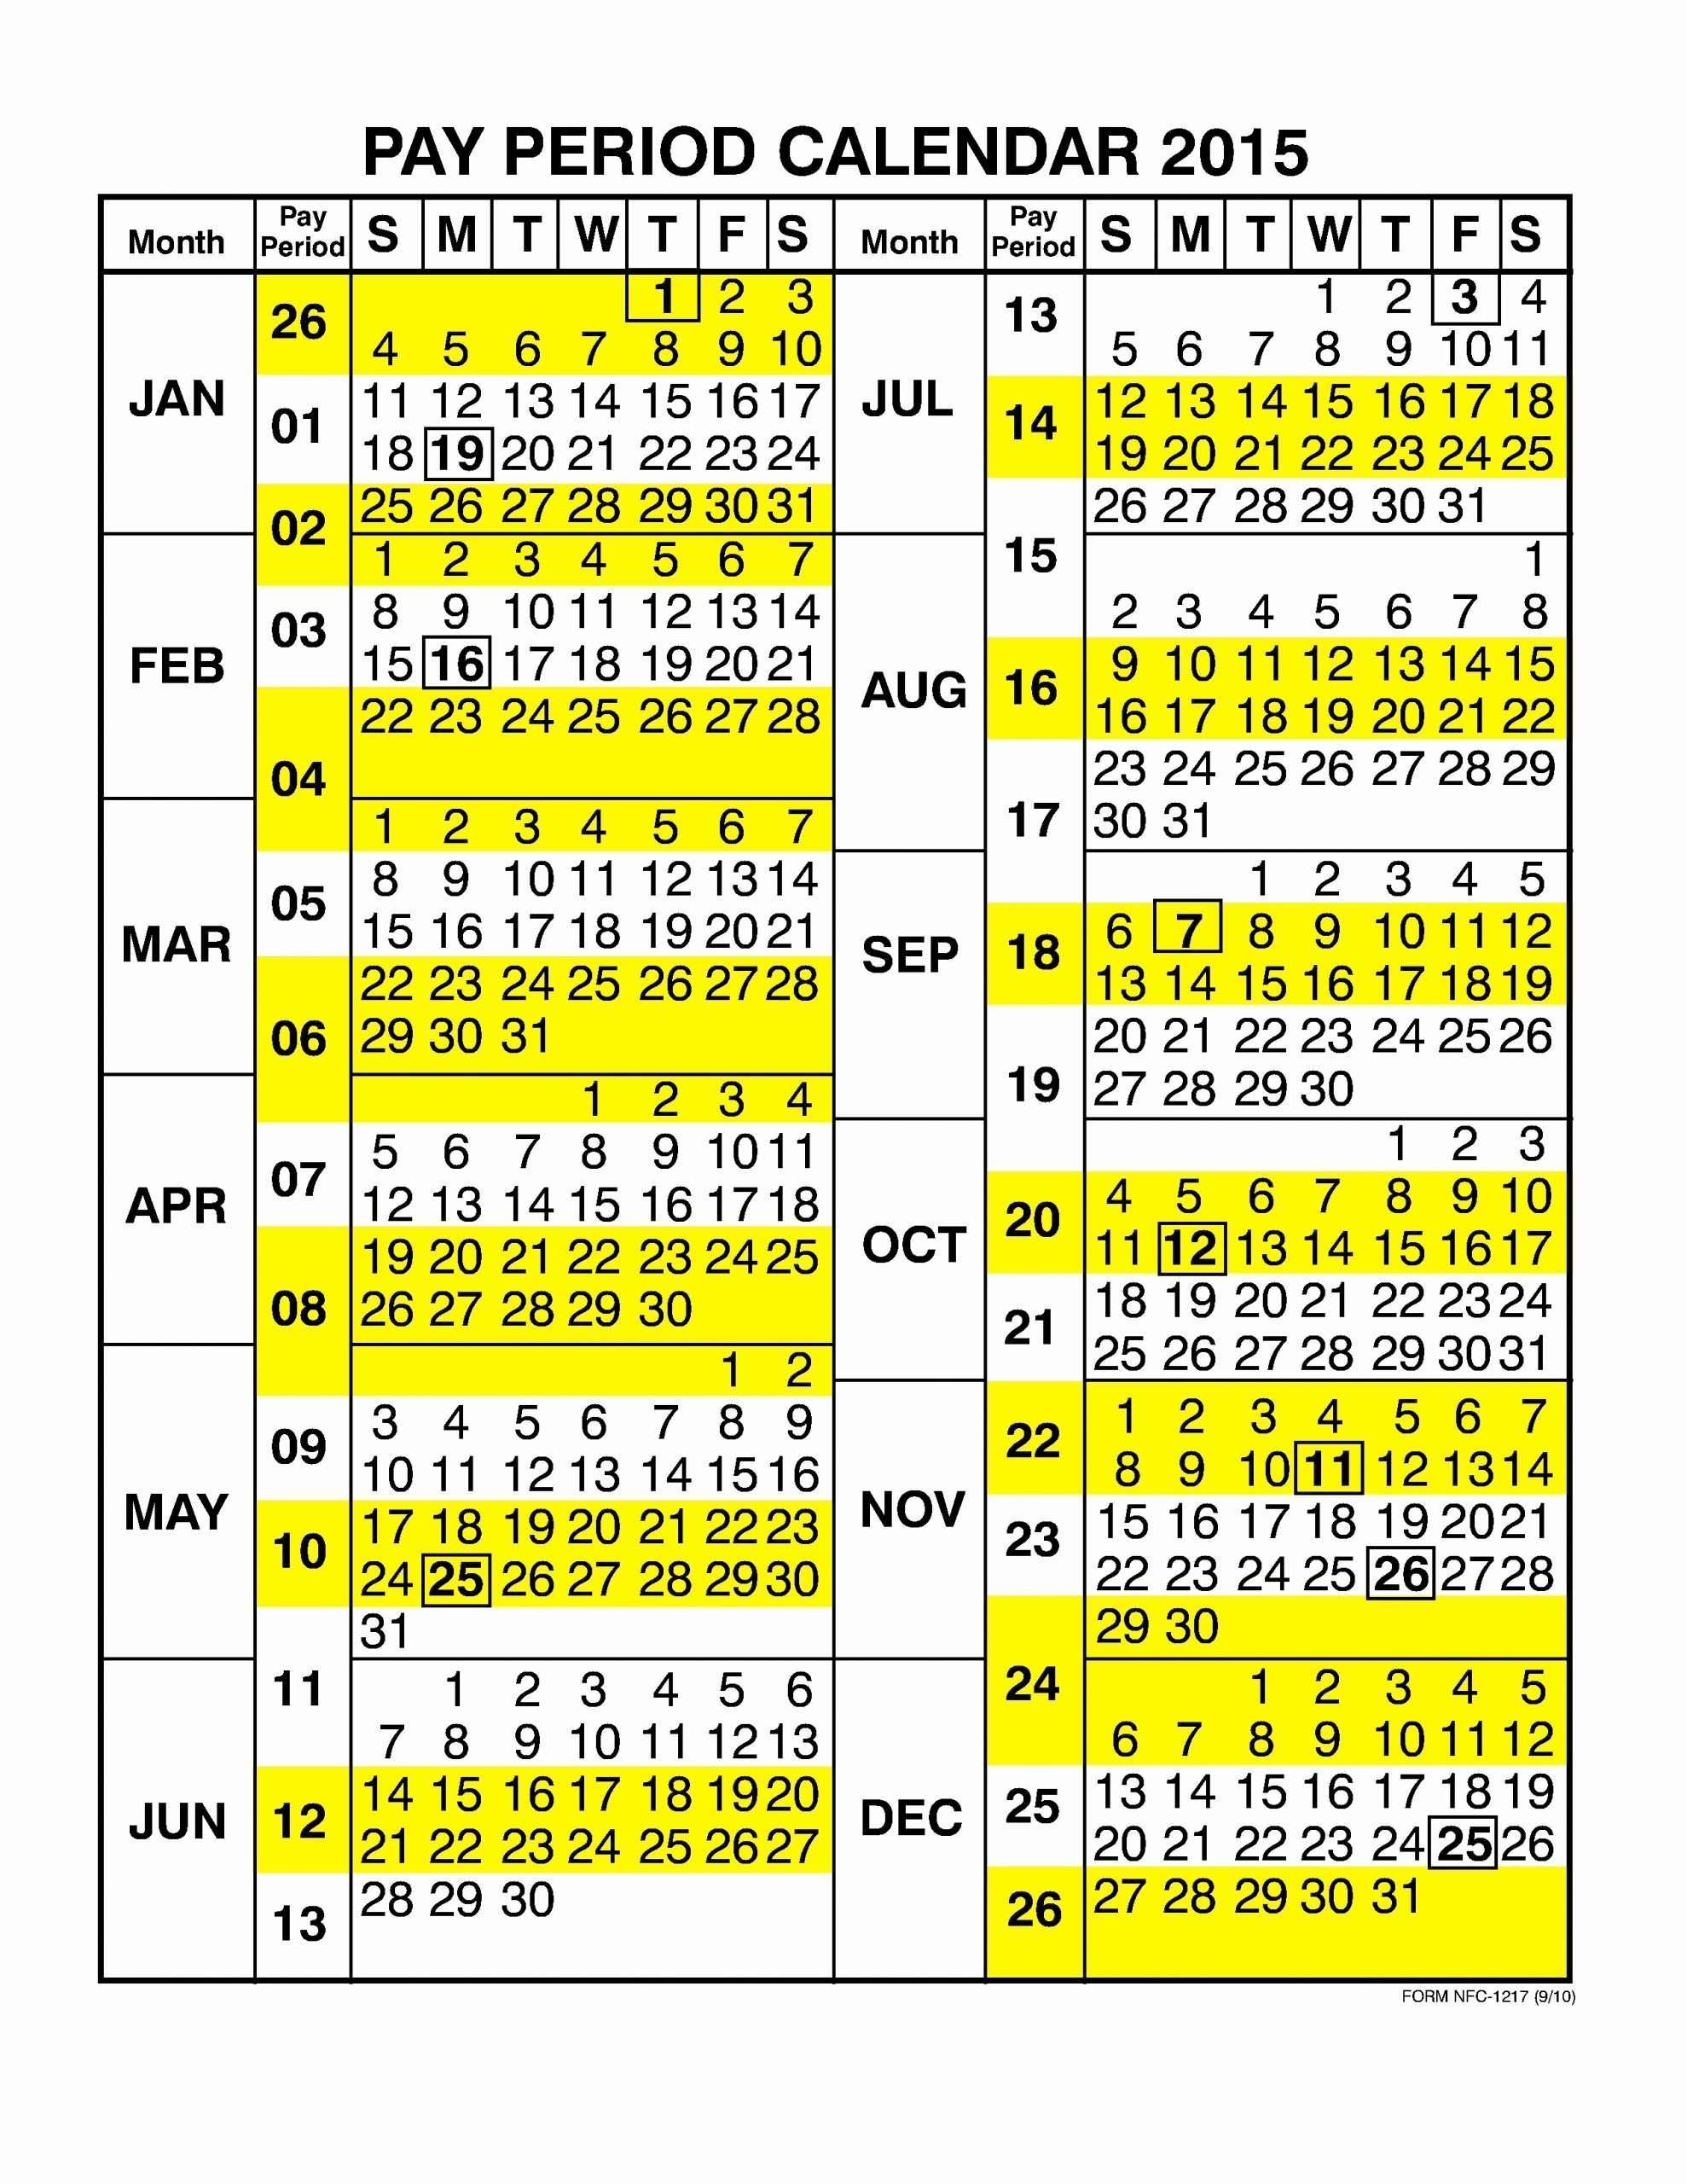 2019 Biweekly Payroll Calendar Template Federal Wednesday within Federal Government Pay Period Calendar 2020